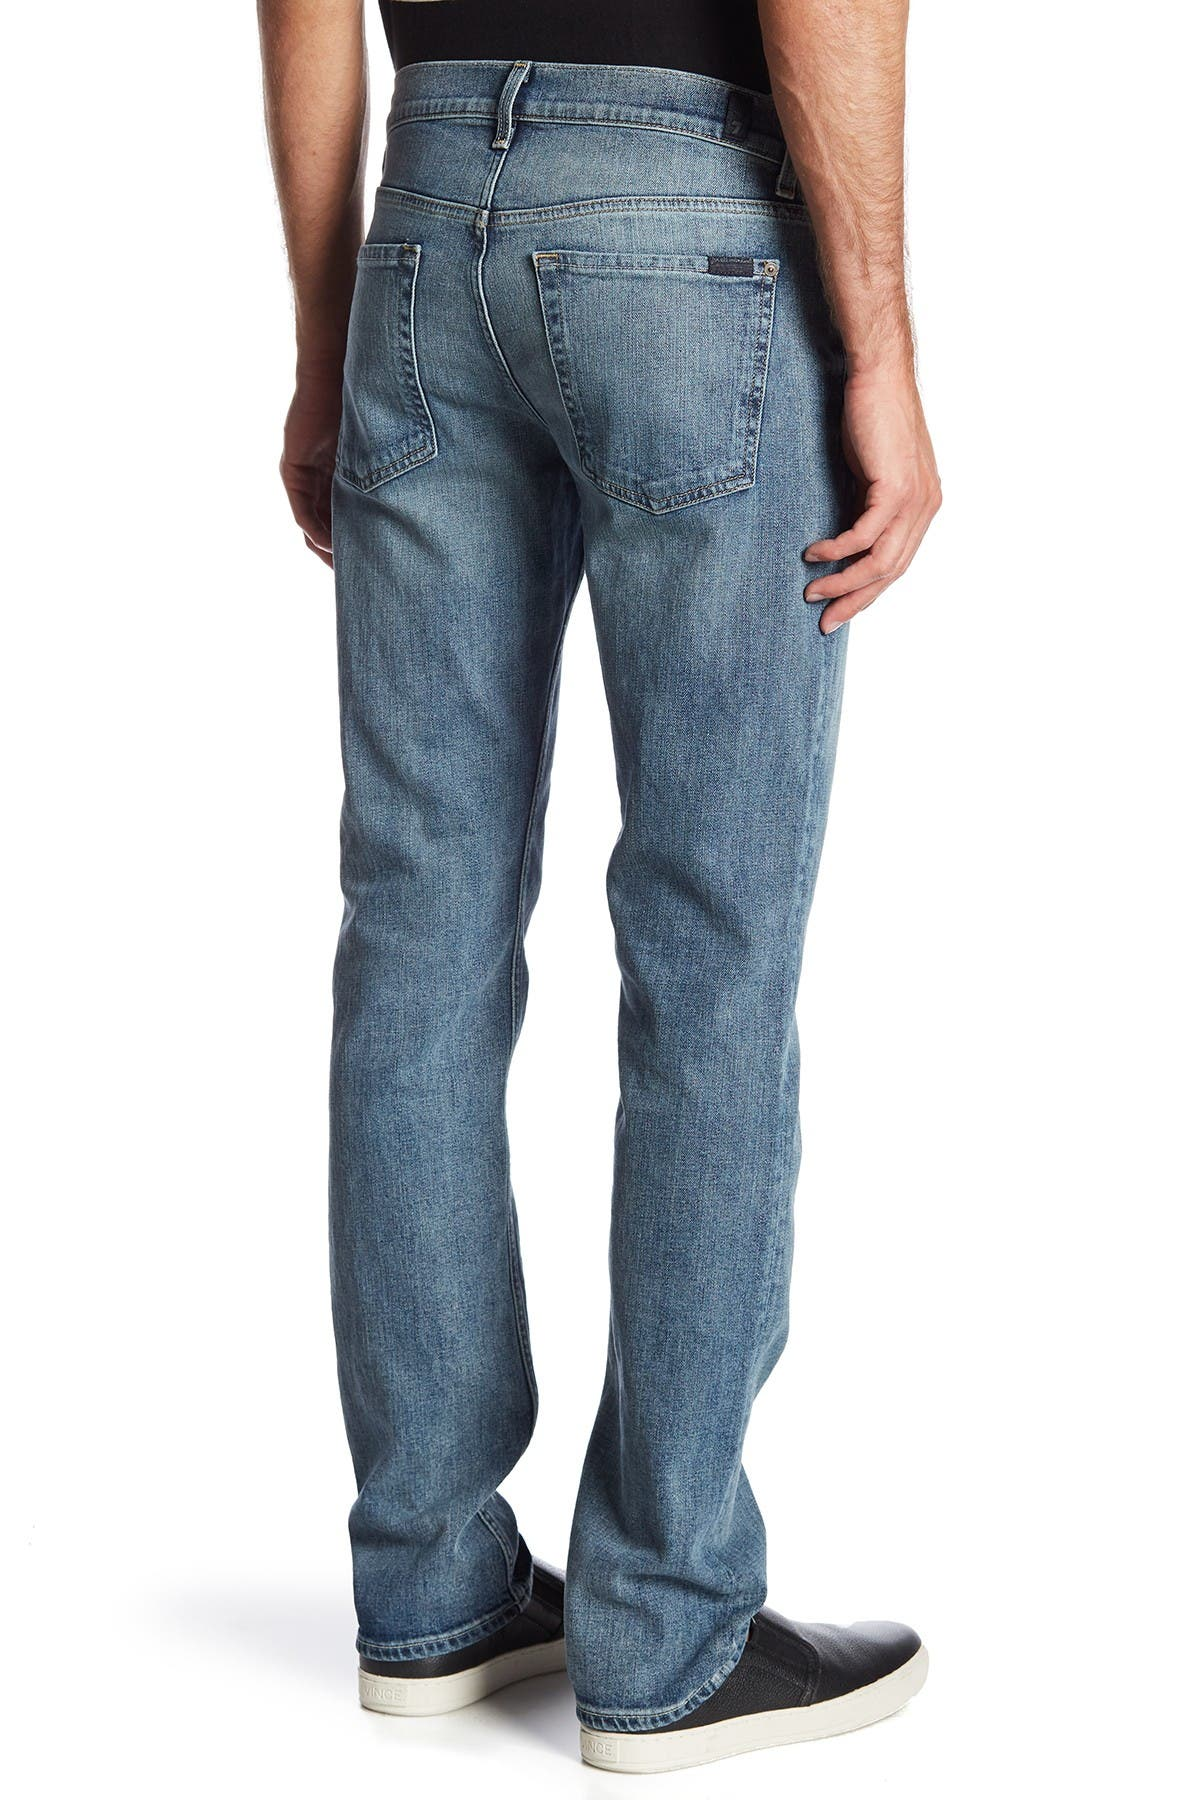 Image of 7 For All Mankind Slimmy Clean Pocket Jeans